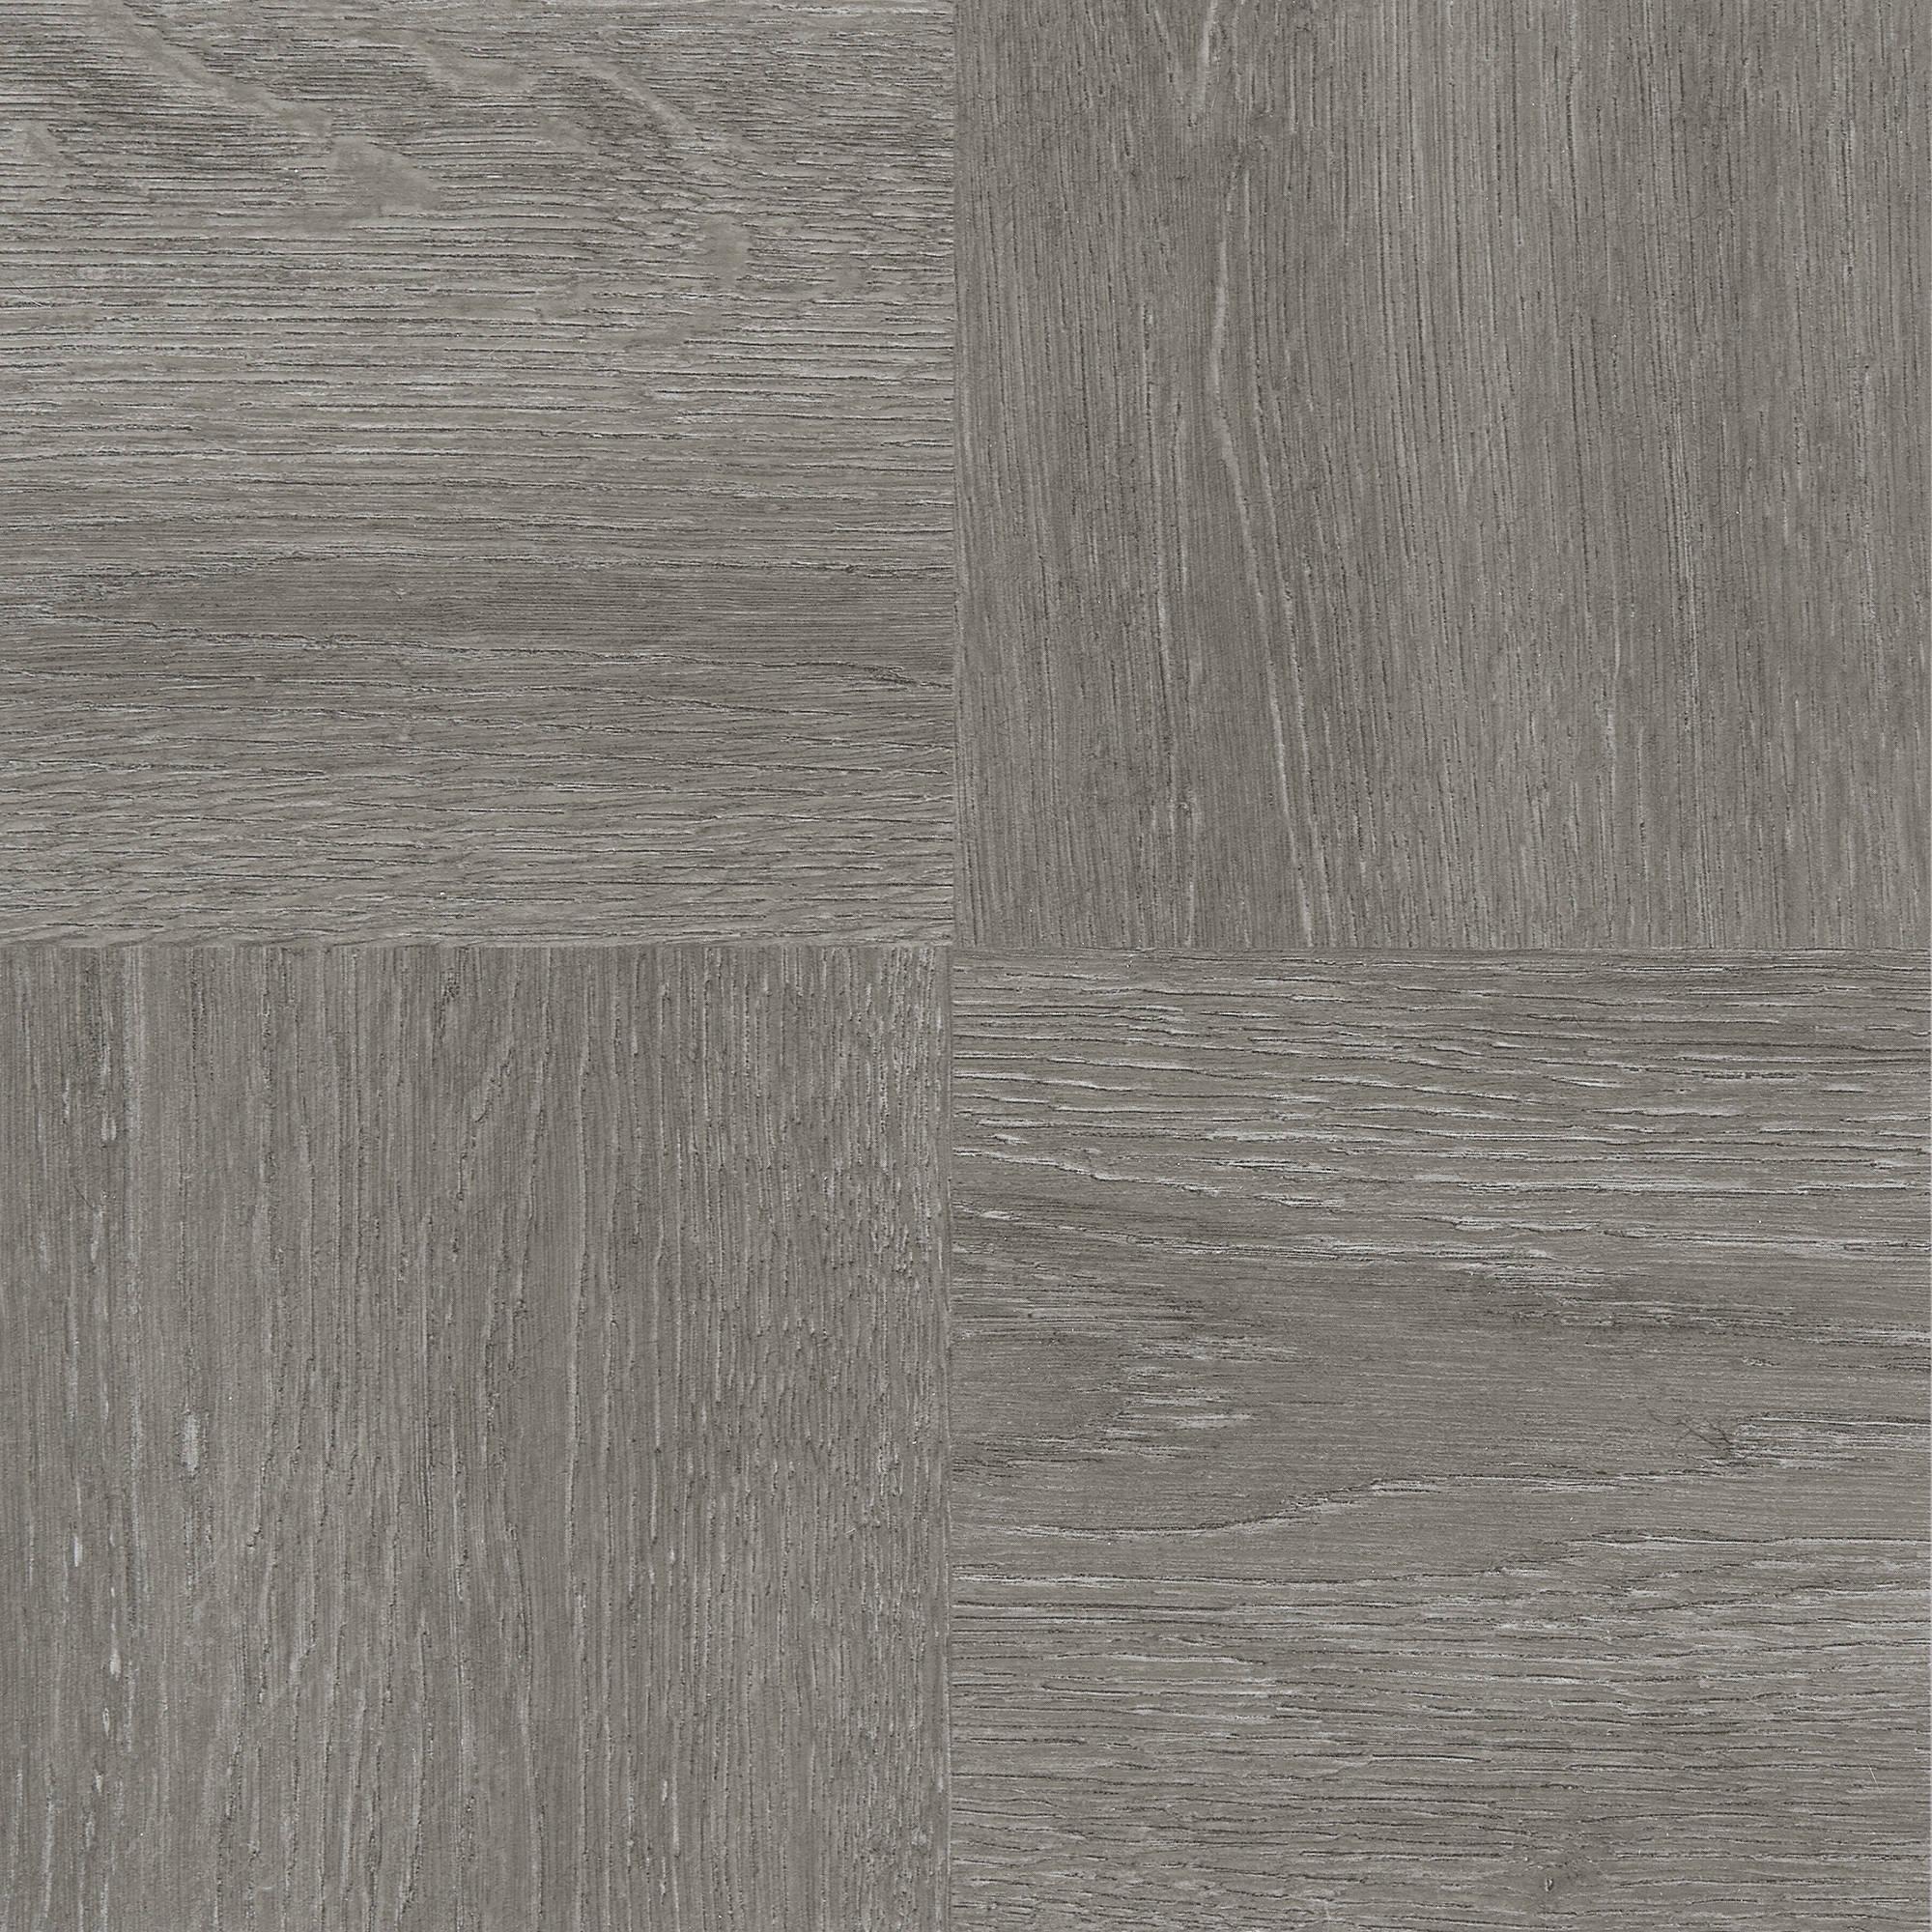 "Nexus Charcoal Grey Wood 12"" x 12"" Self-Adhesive Vinyl Floor Tile #229, 20 Tiles"